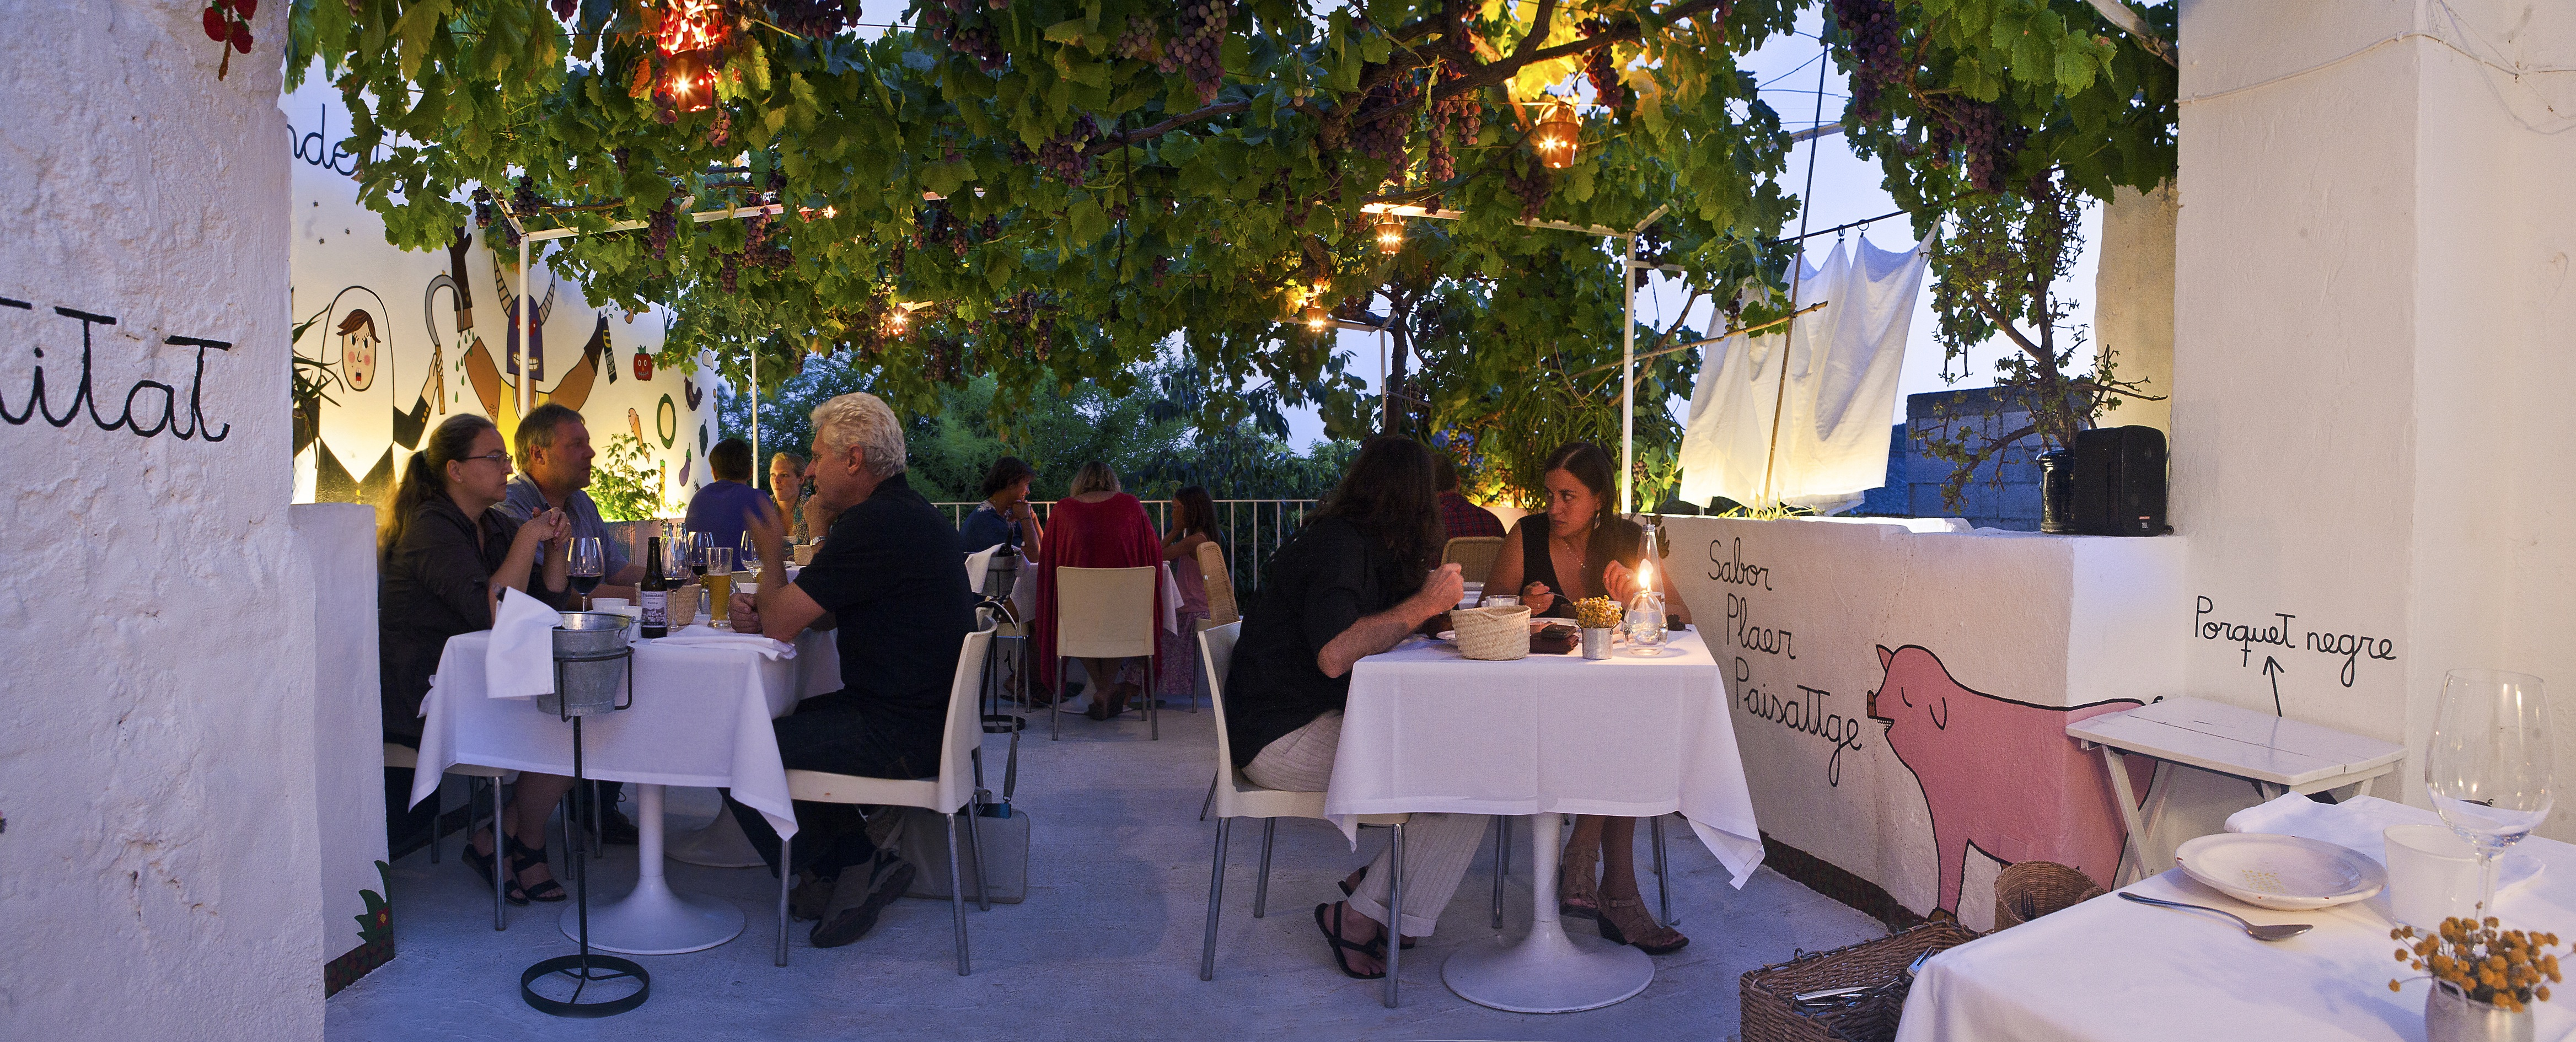 Top 10 restaurants in mallorca lfstyle for Bistro del jardin mallorca